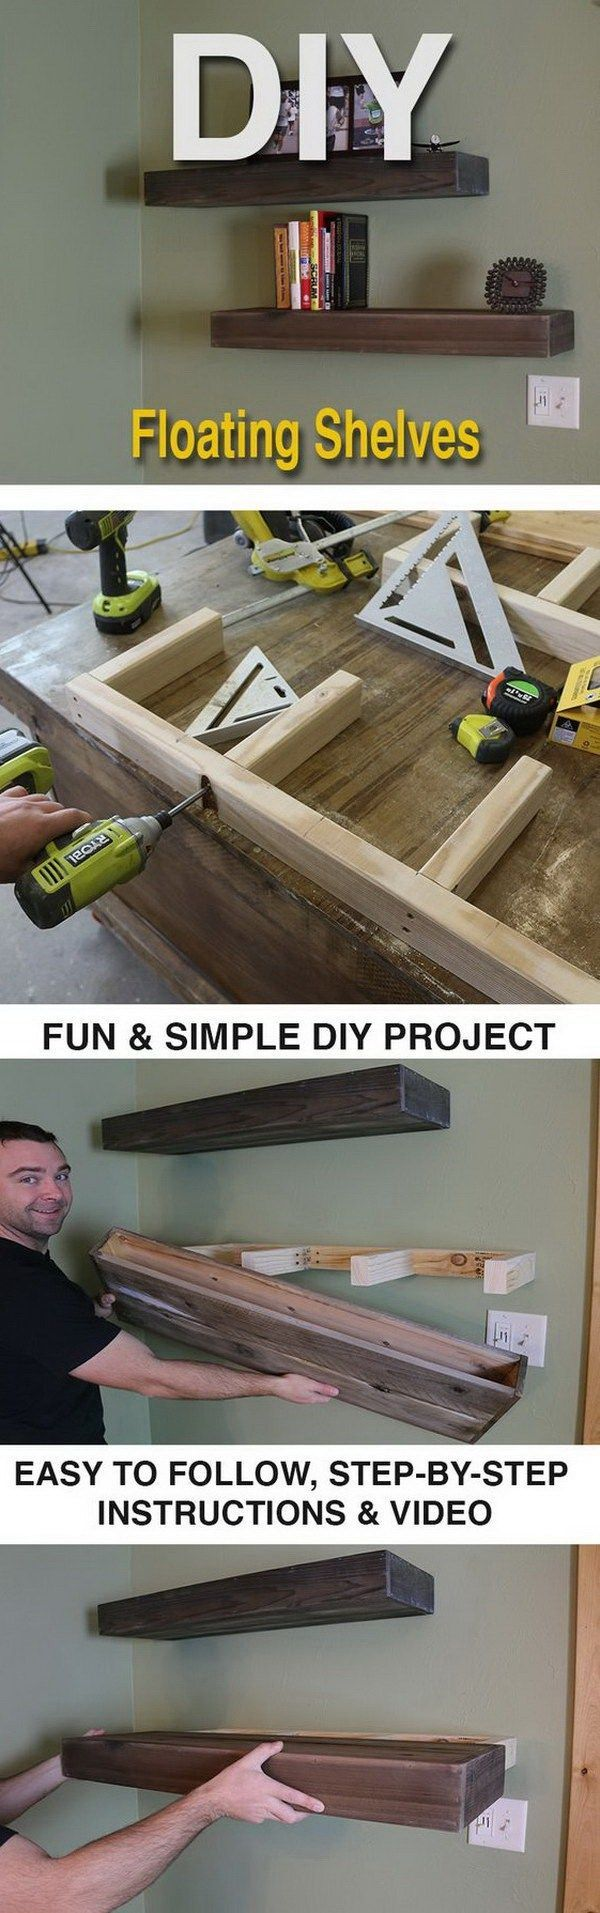 DIY Wood Floating Shelves. DIY Wood Floating Shelves are a great way to keep collectibles, decorative items or books. It's simple to make too.